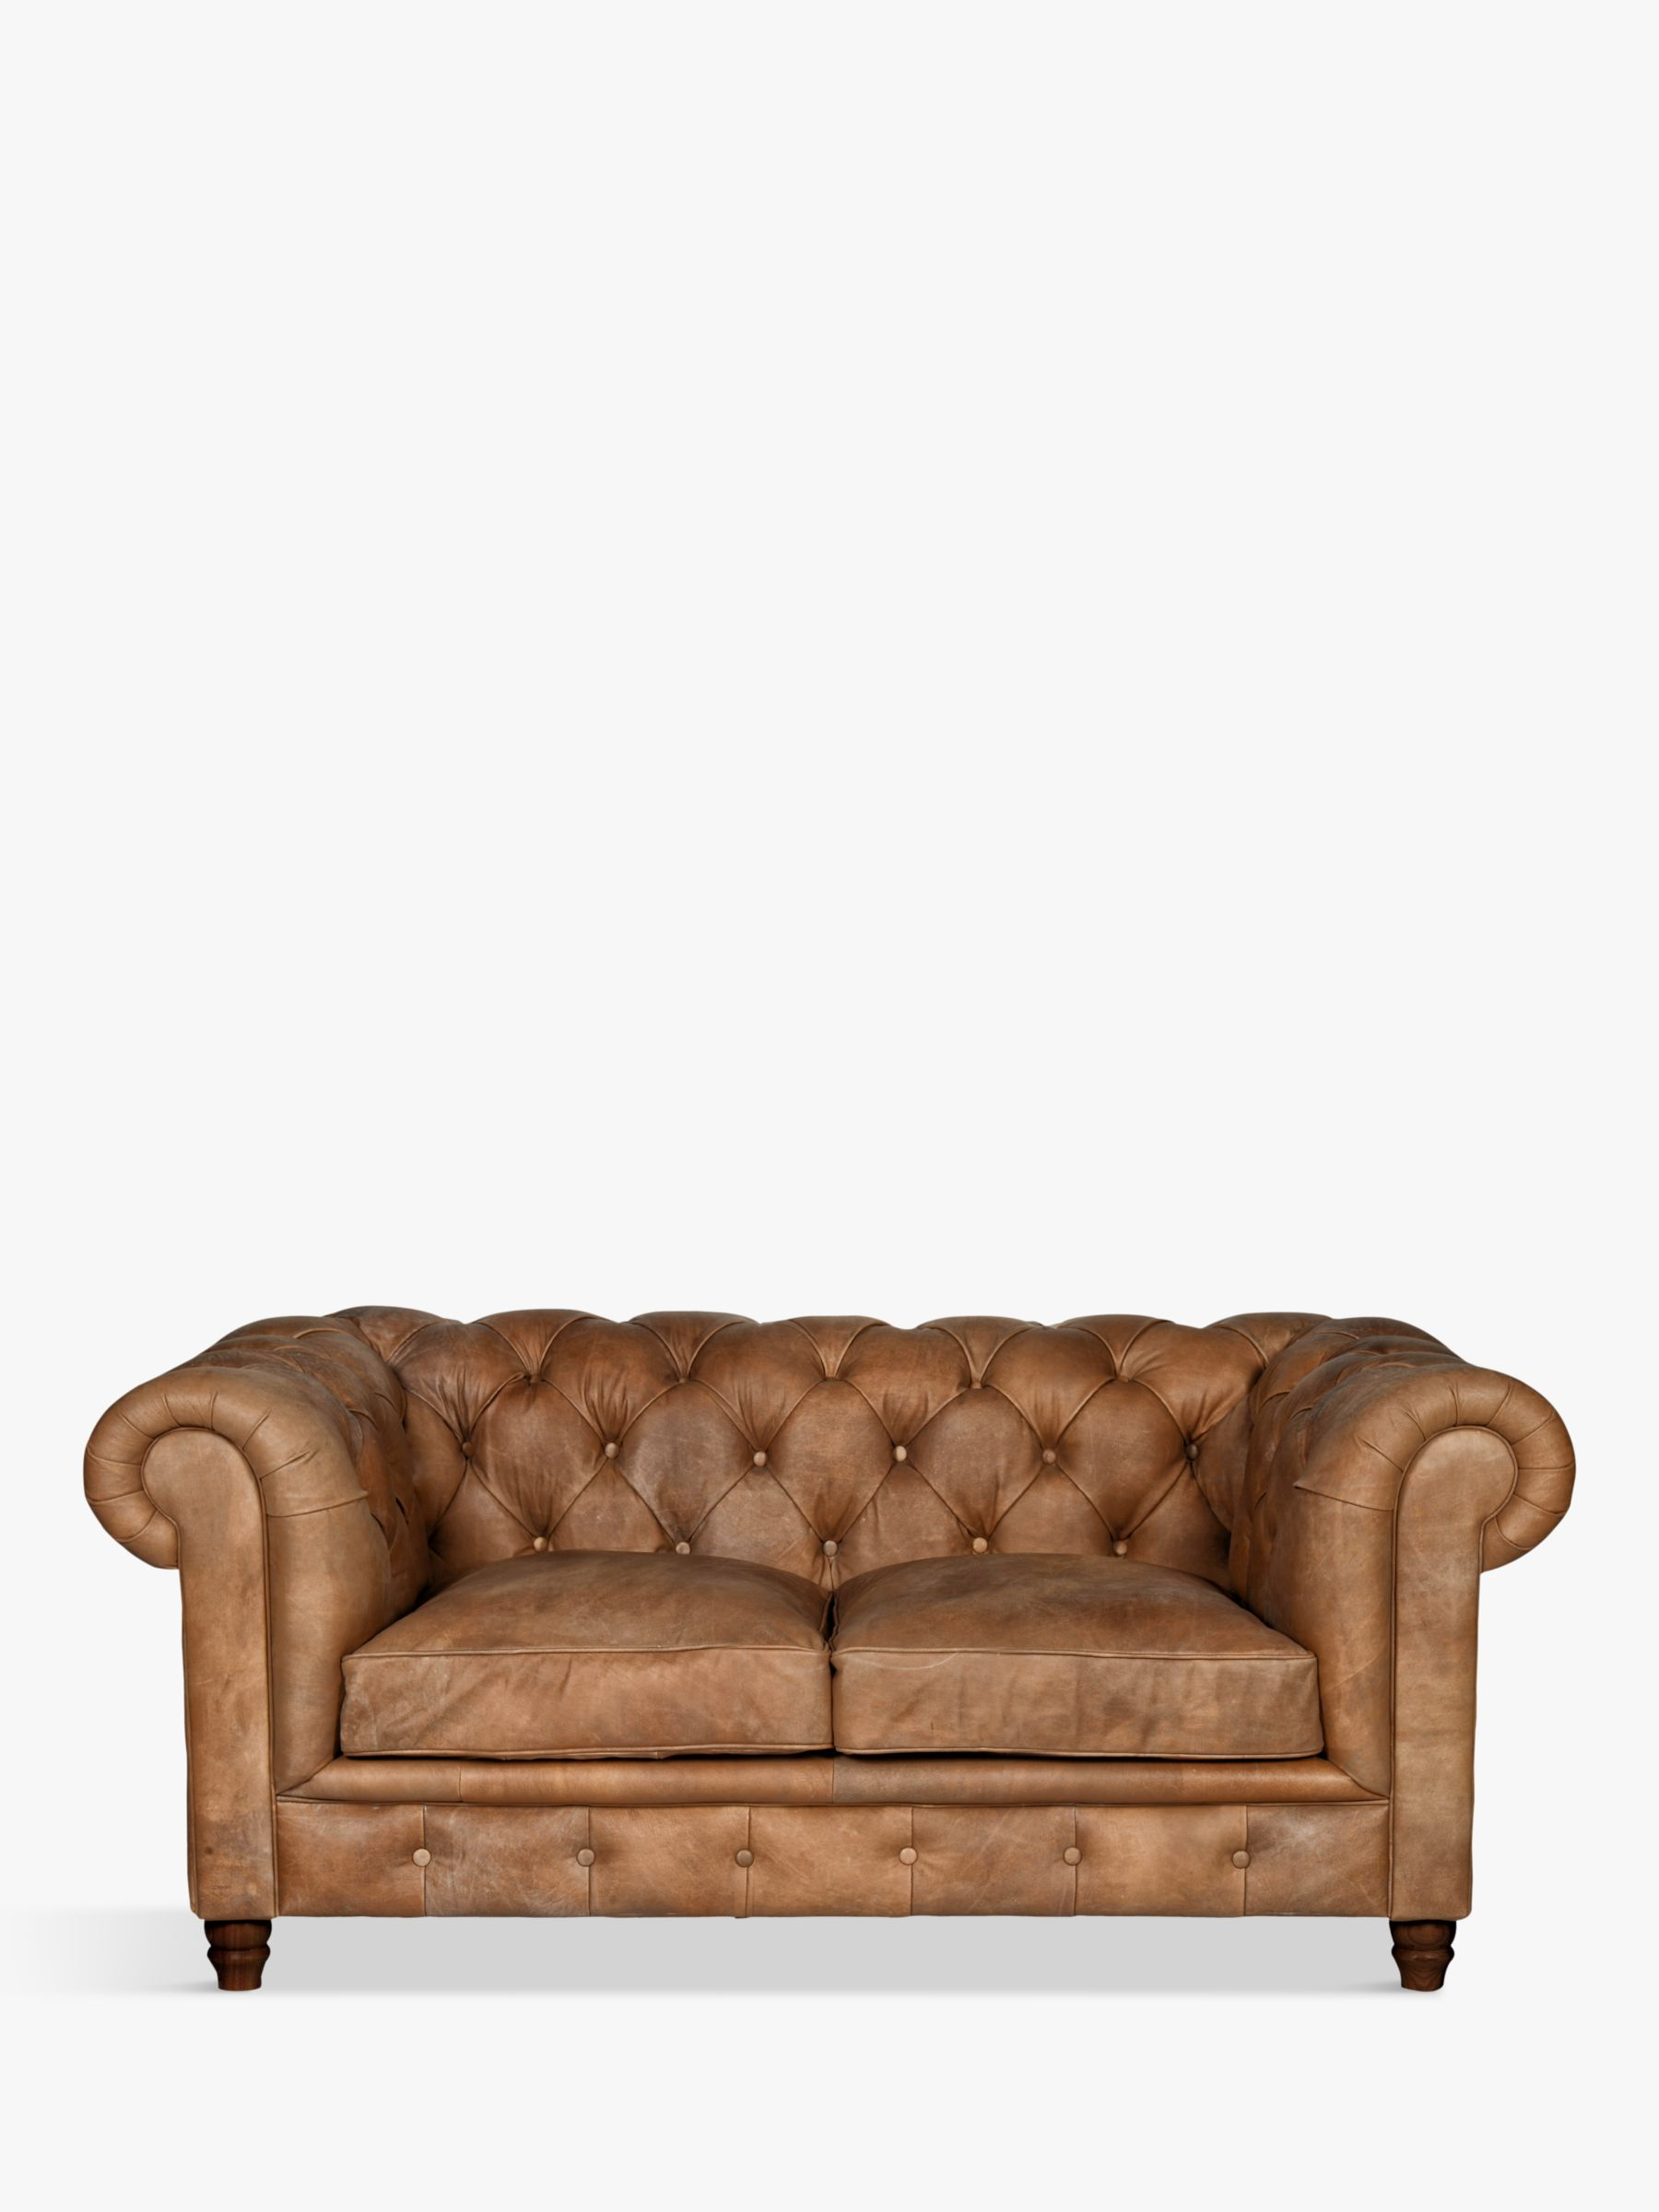 Halo Halo Earle Chesterfield Medium 2 Seater Leather Sofa